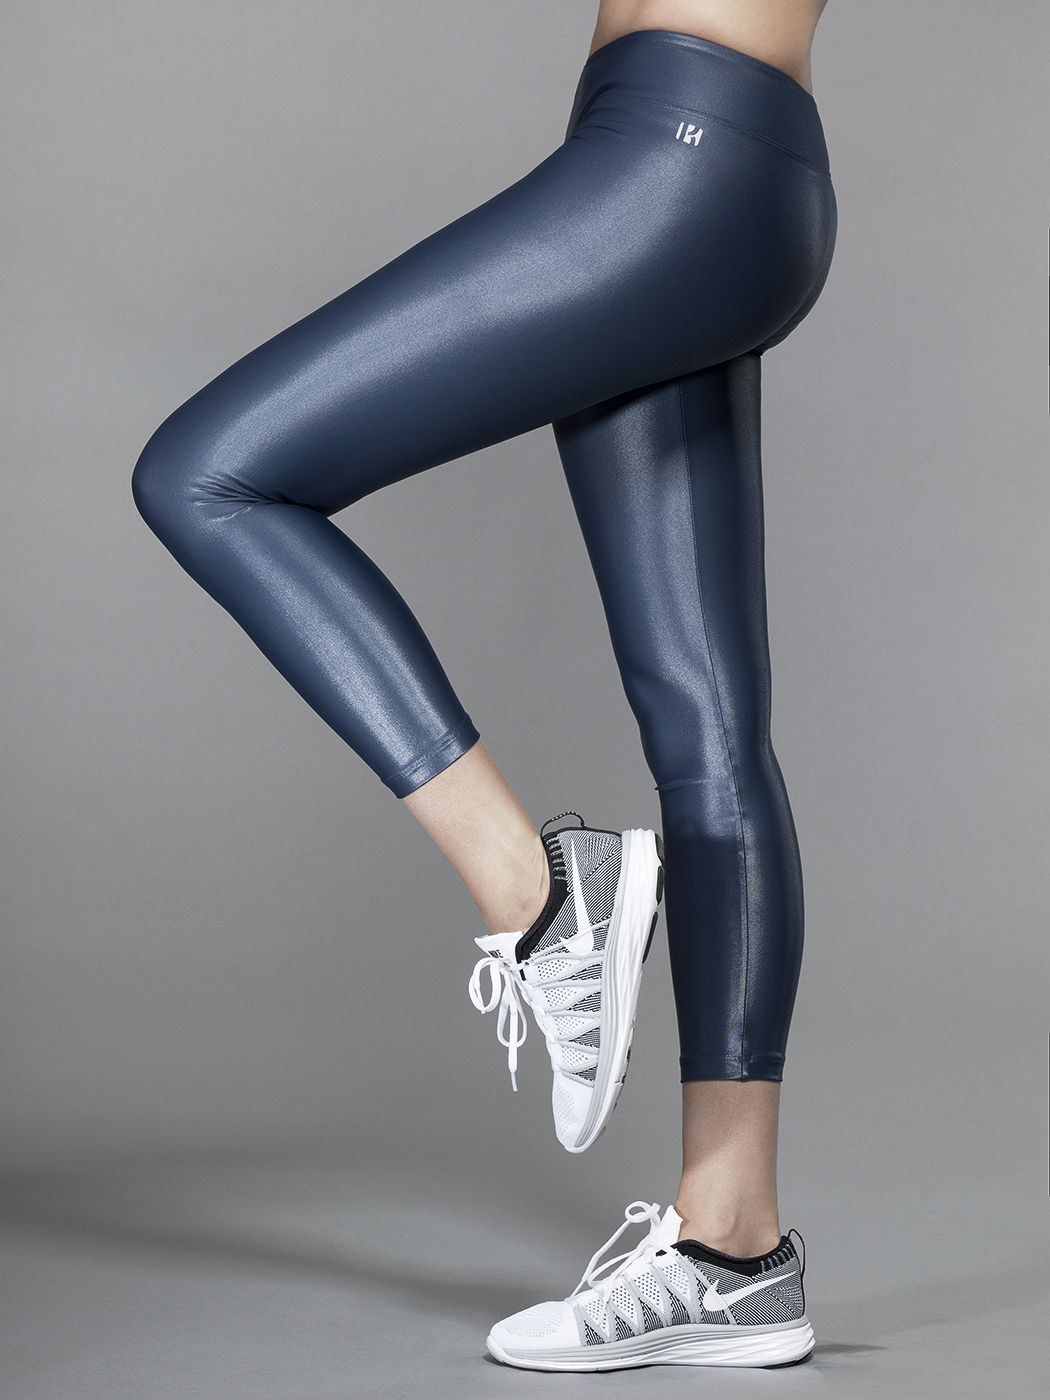 b9b8715967a01 Koral Activewear Lustrous Leggings | Yoga and Fitness Apparel in ...